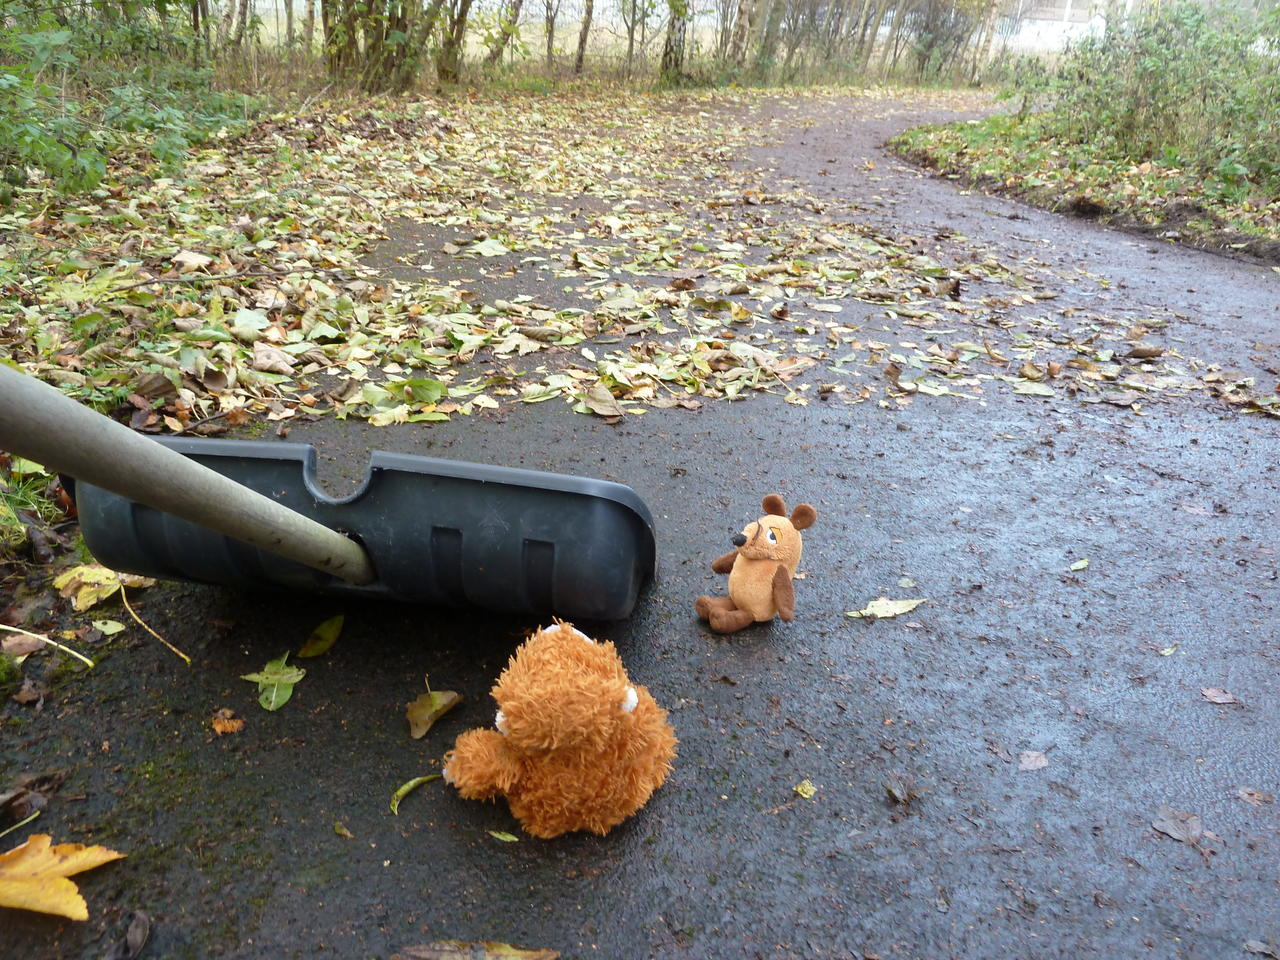 Pongo and Mouse next to the shovel looking forward, where the path is full of leaves